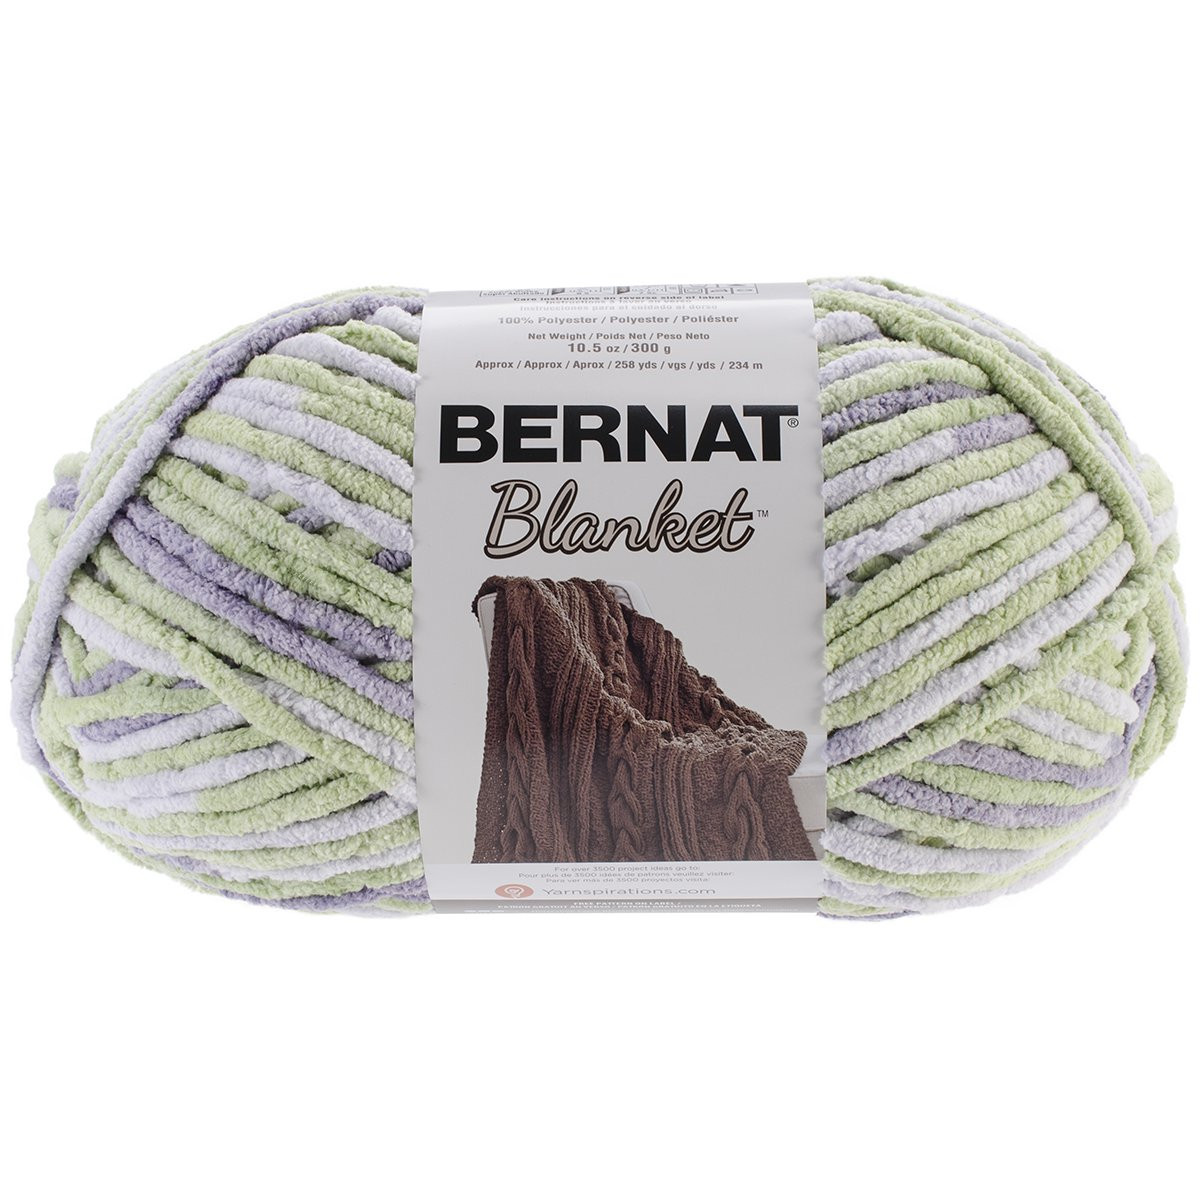 Bernat Blanket Big Ball Yarn Unique Spinrite Bernat Blanket Big Ball Yarn Of Innovative 41 Ideas Bernat Blanket Big Ball Yarn